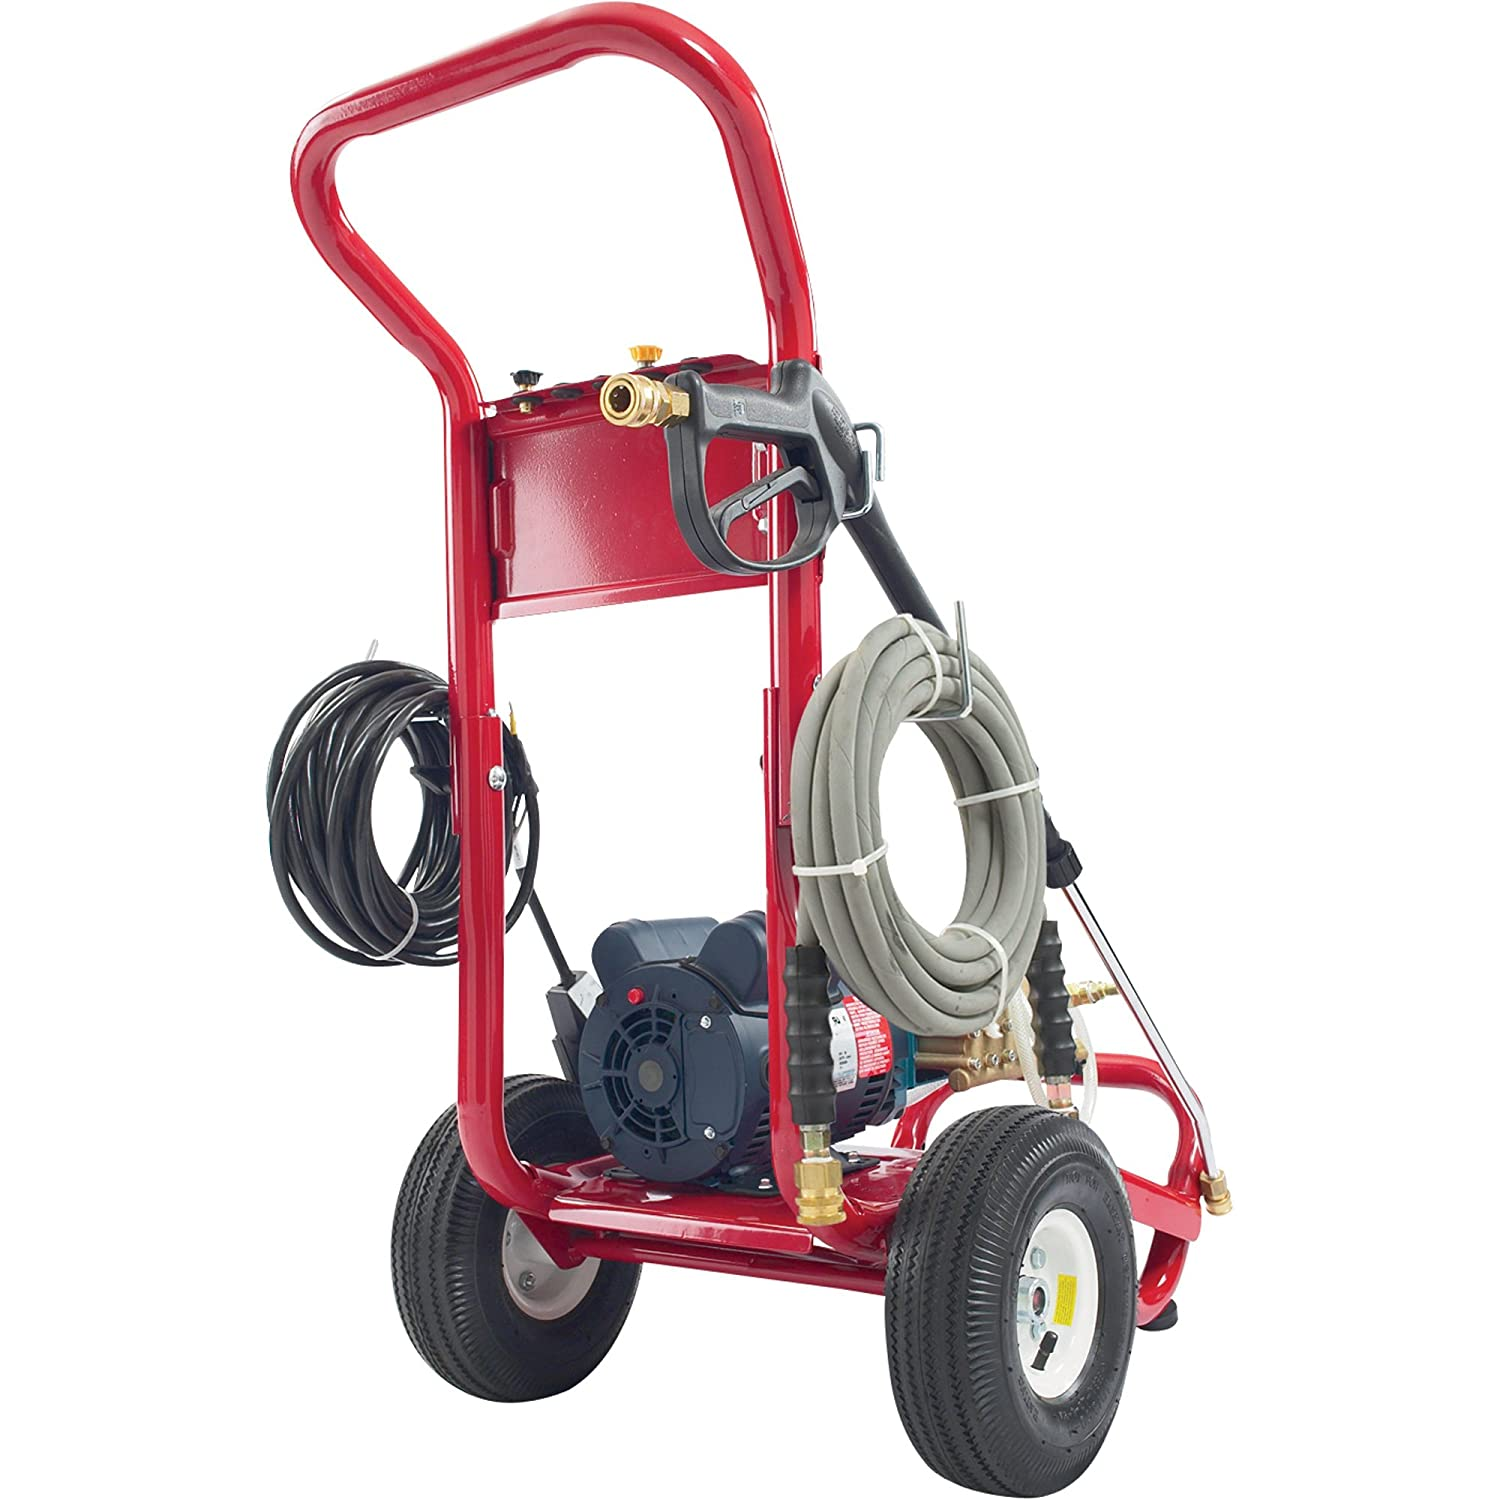 81b9HishzVL._SL1500_ amazon com northstar electric cold water pressure washer 2000  at aneh.co